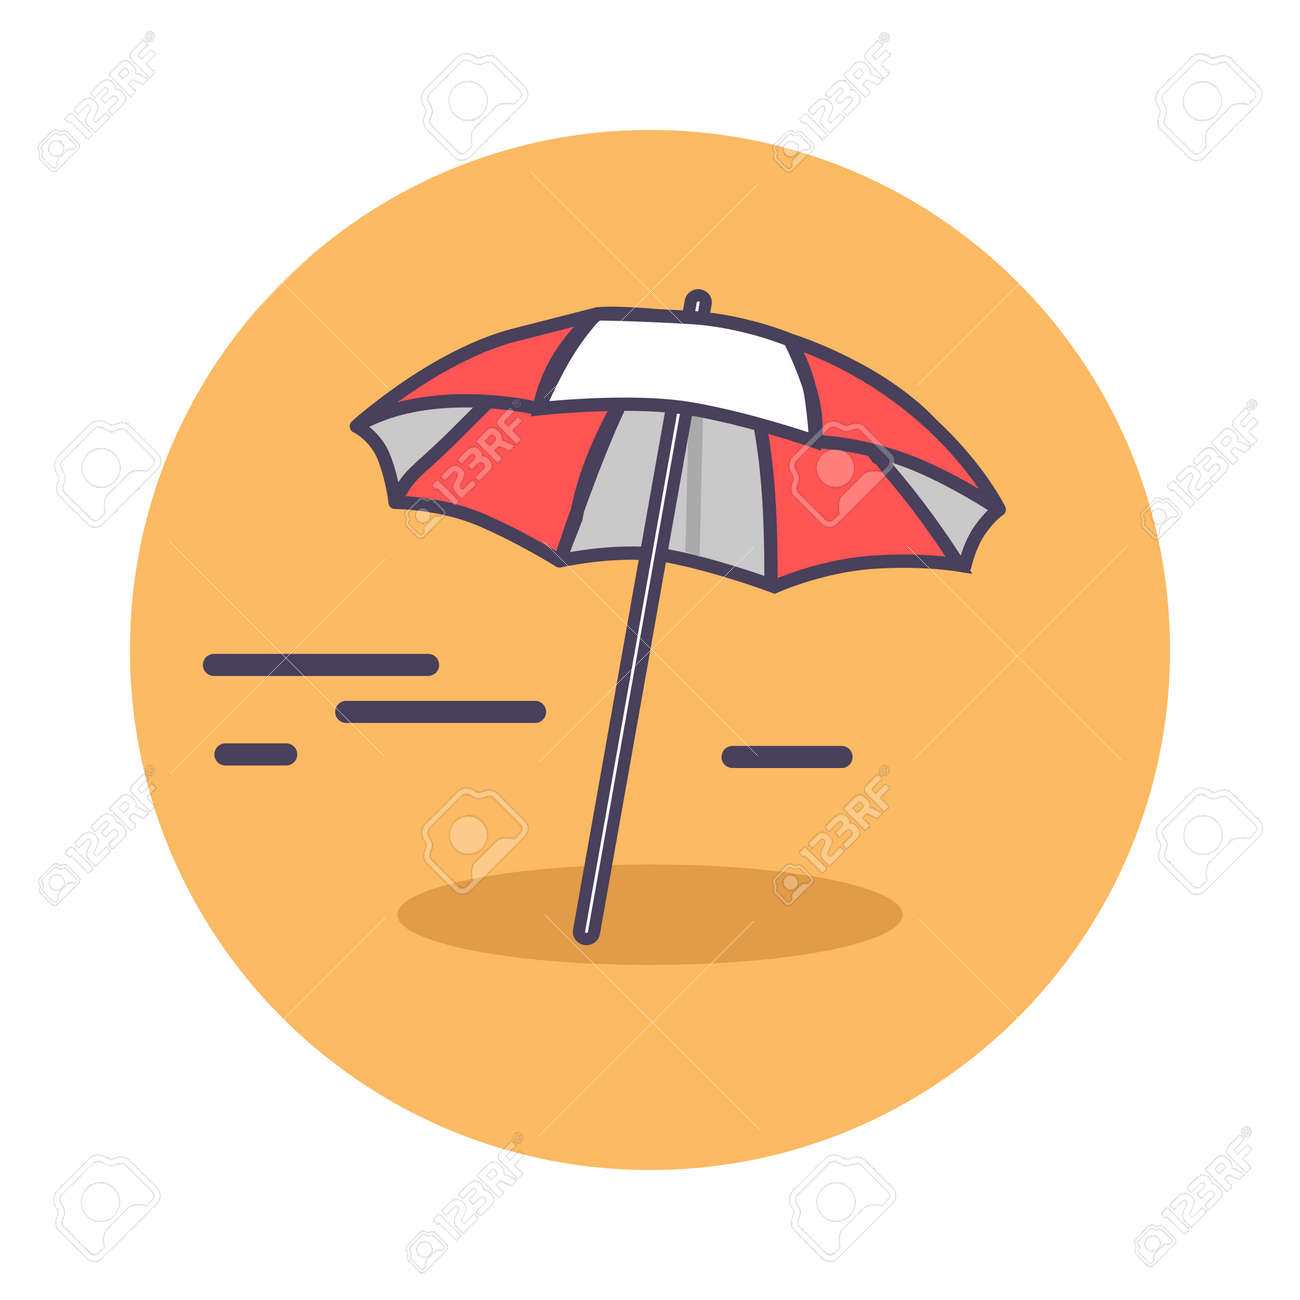 e998e725ba Circle icon depicting sandy beach. Vector illustration of red-and-white..